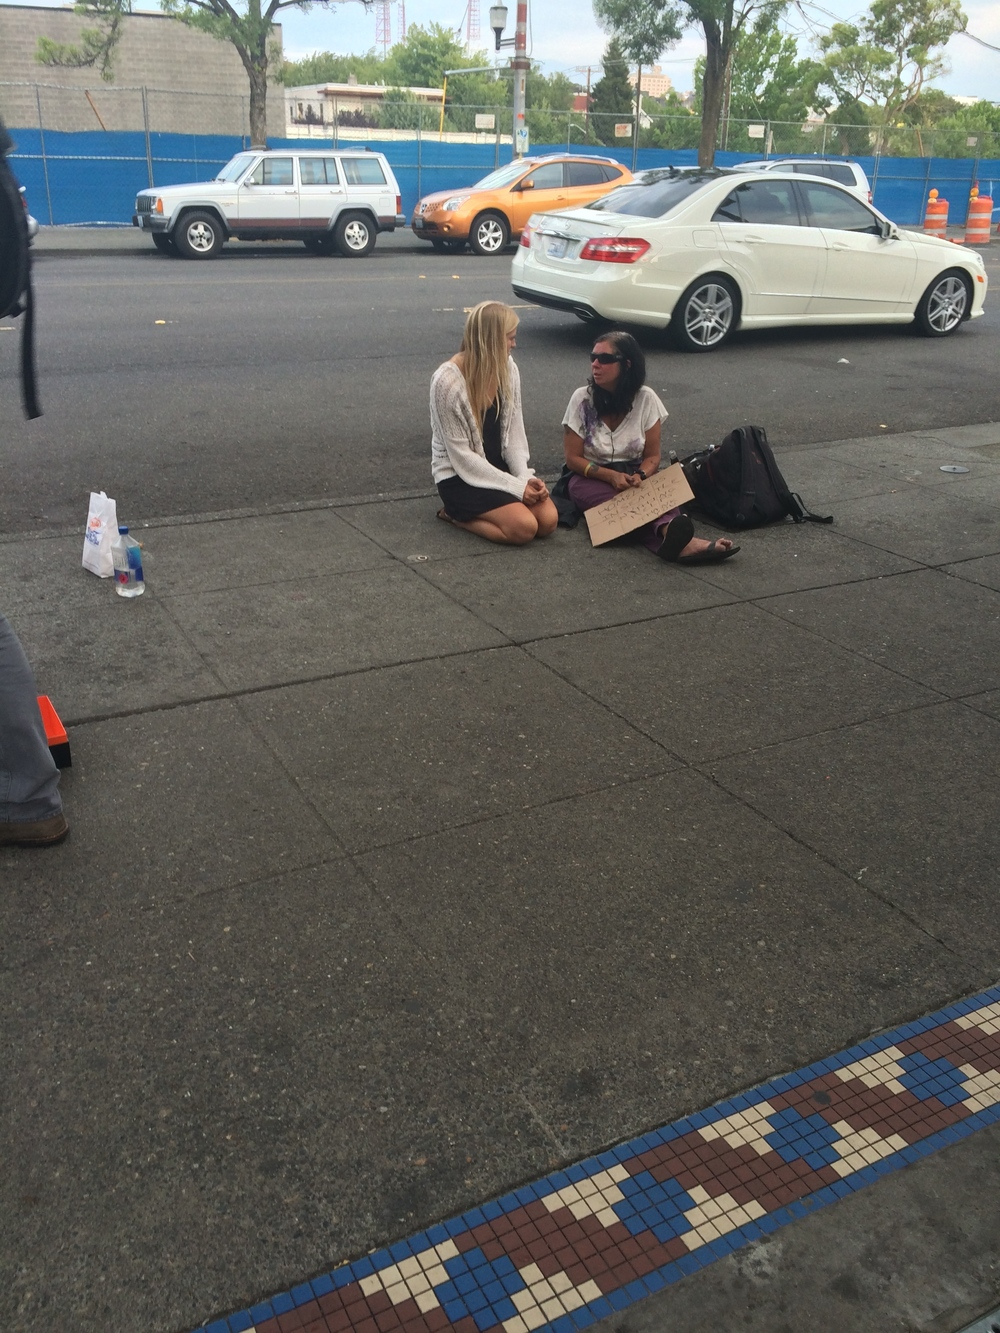 Ellie, a LBHS senior, consoles a homeless woman in downtown Seattle, WA during the Refuge high school road trip.